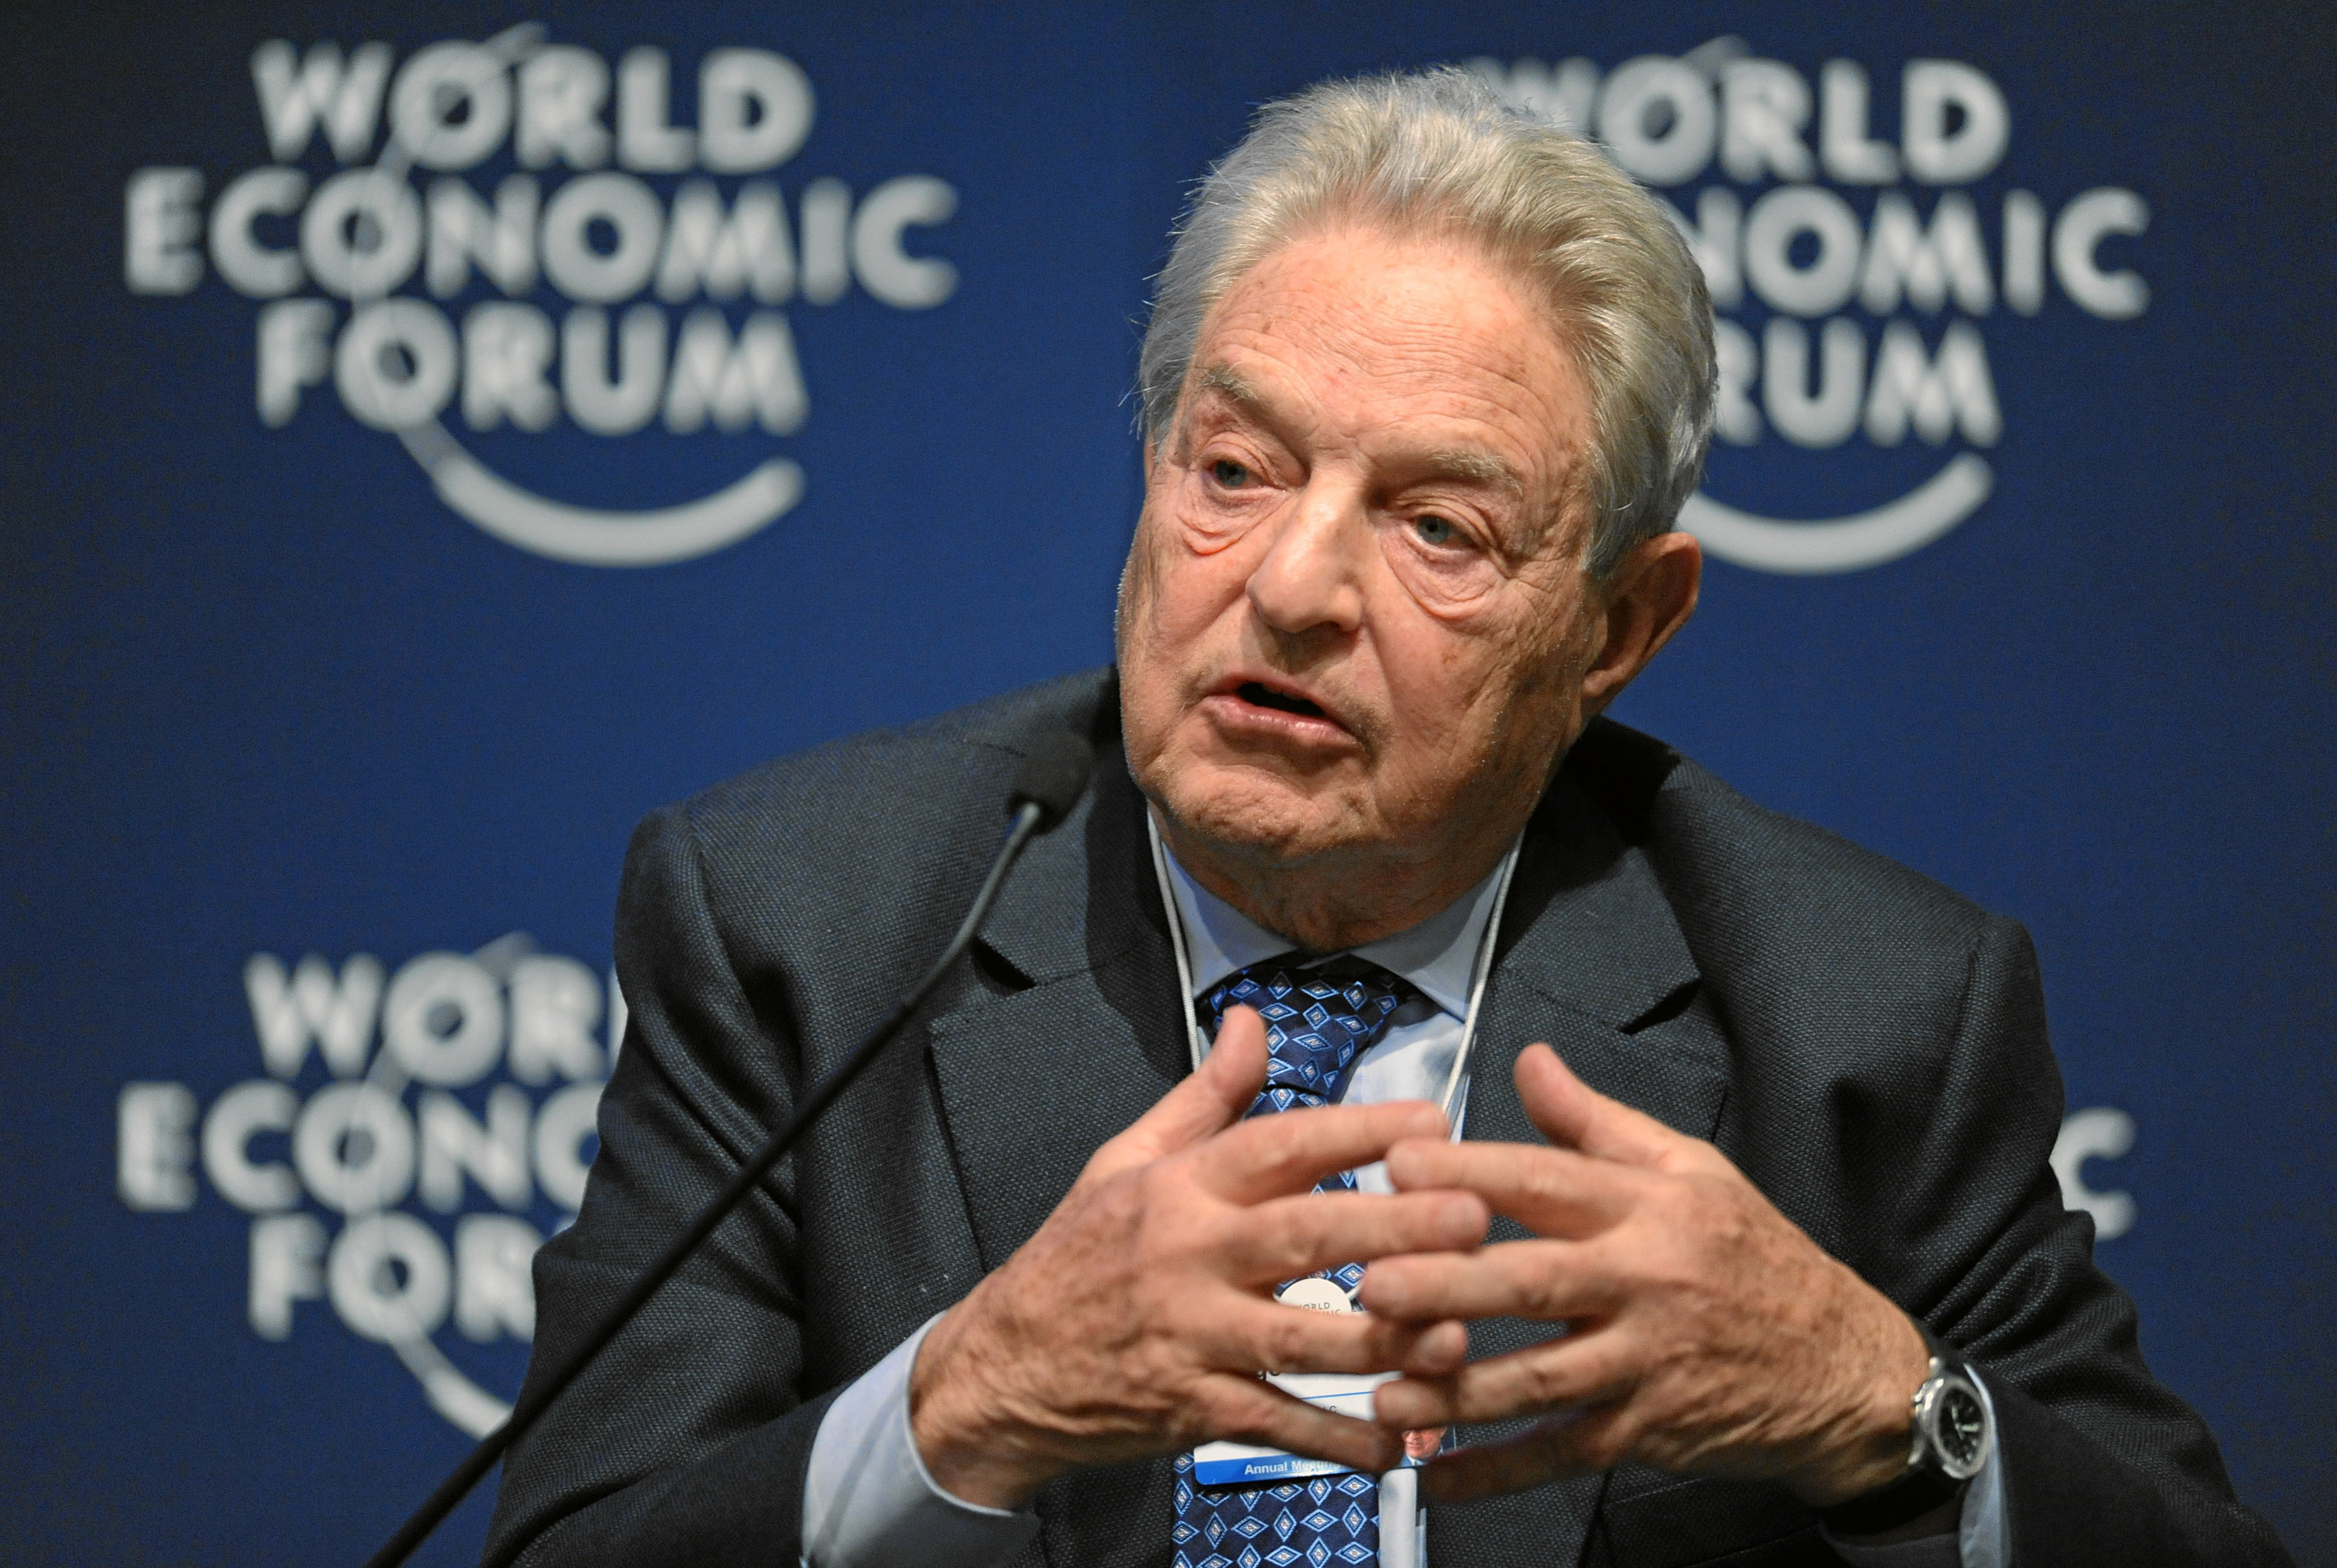 http://upload.wikimedia.org/wikipedia/commons/1/11/George_Soros_-_World_Economic_Forum_Annual_Meeting_2011.jpg